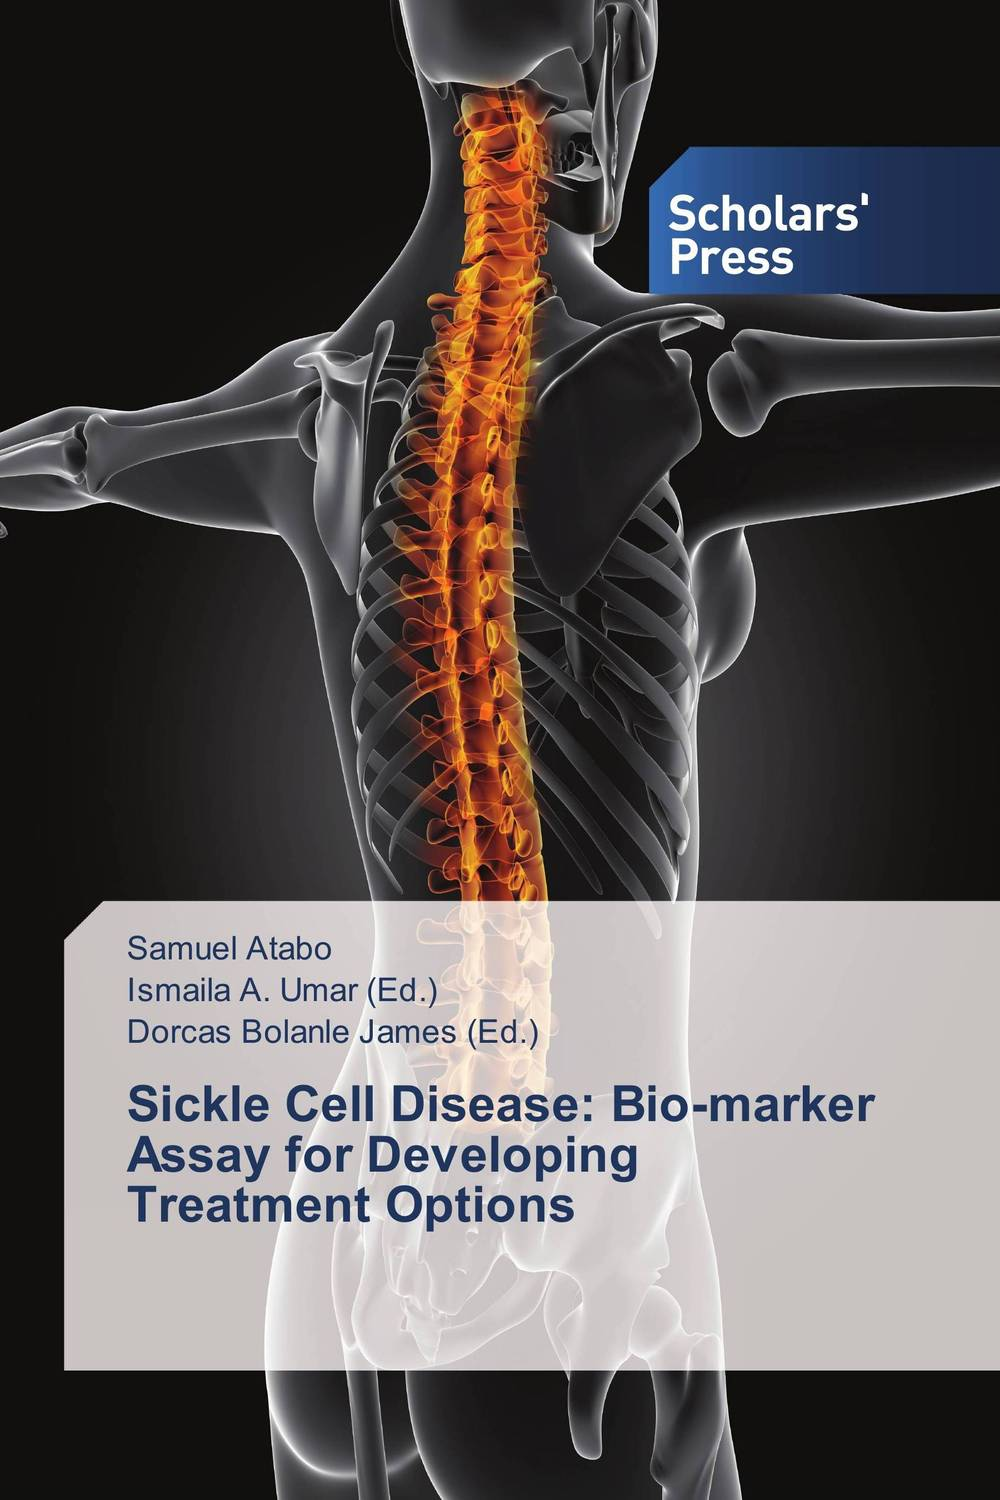 Sickle Cell Disease: Bio-marker Assay for Developing Treatment Options farm hand forged spring steel sickle king chai sickle weeding knife grinding the blade free firewood